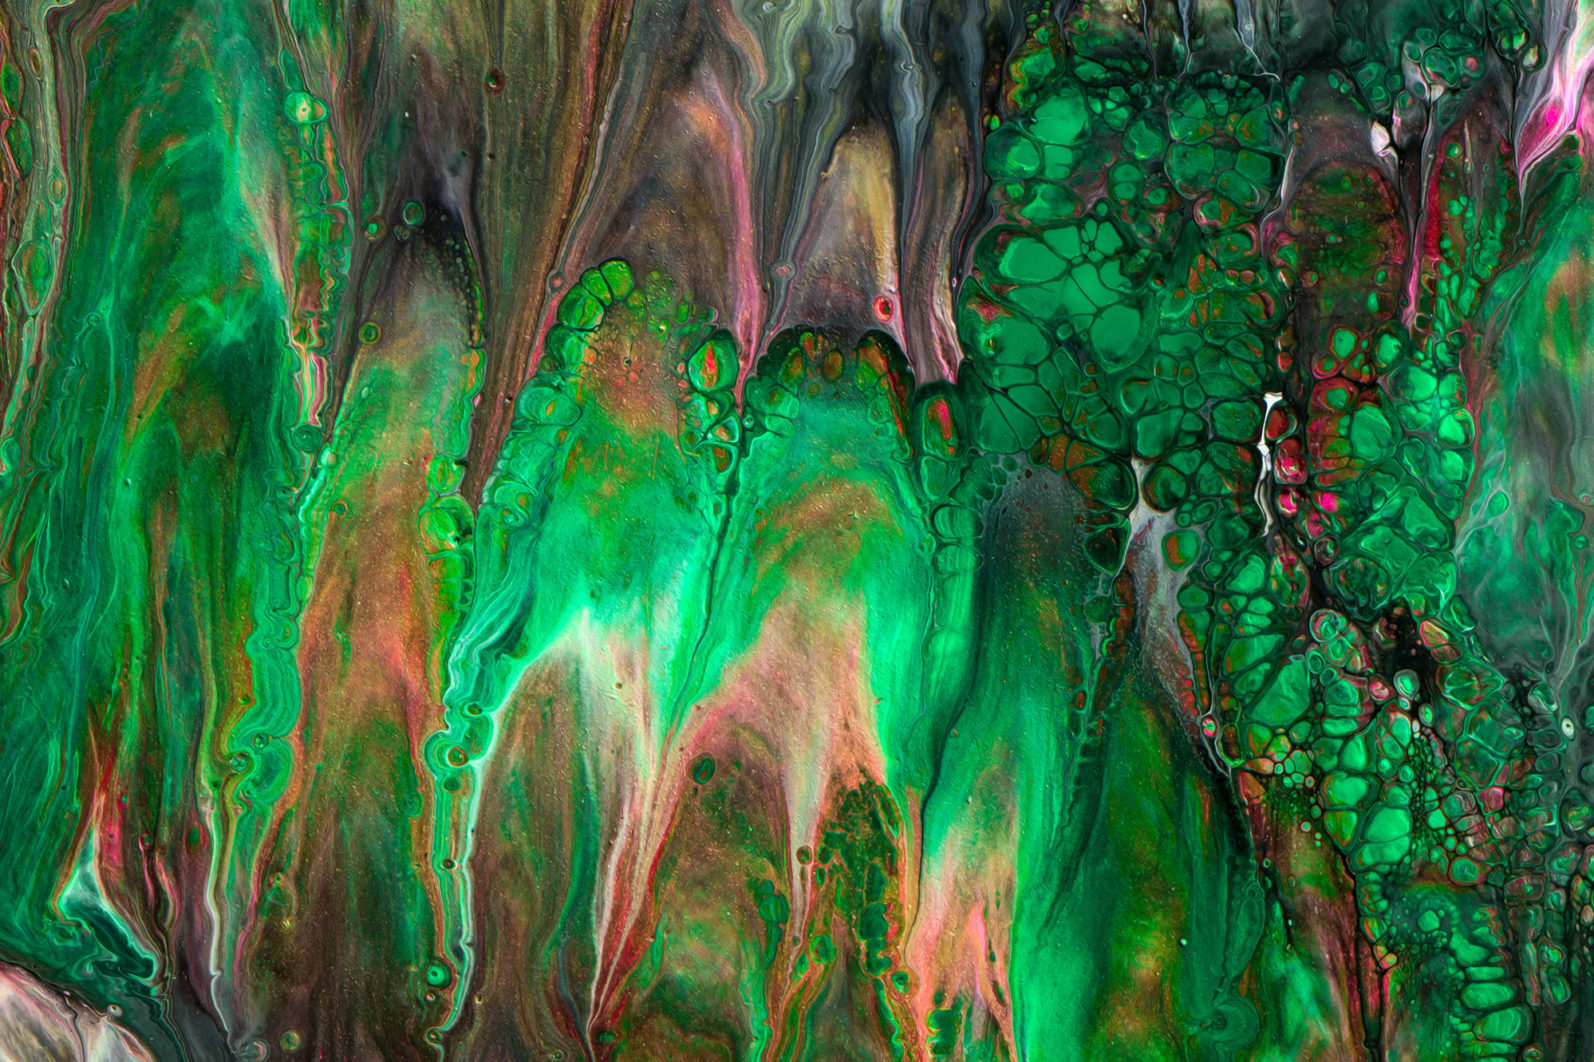 Enigma: 15 Abstract Paint Textures - 08 Enigma Product imagery indiv 04 -